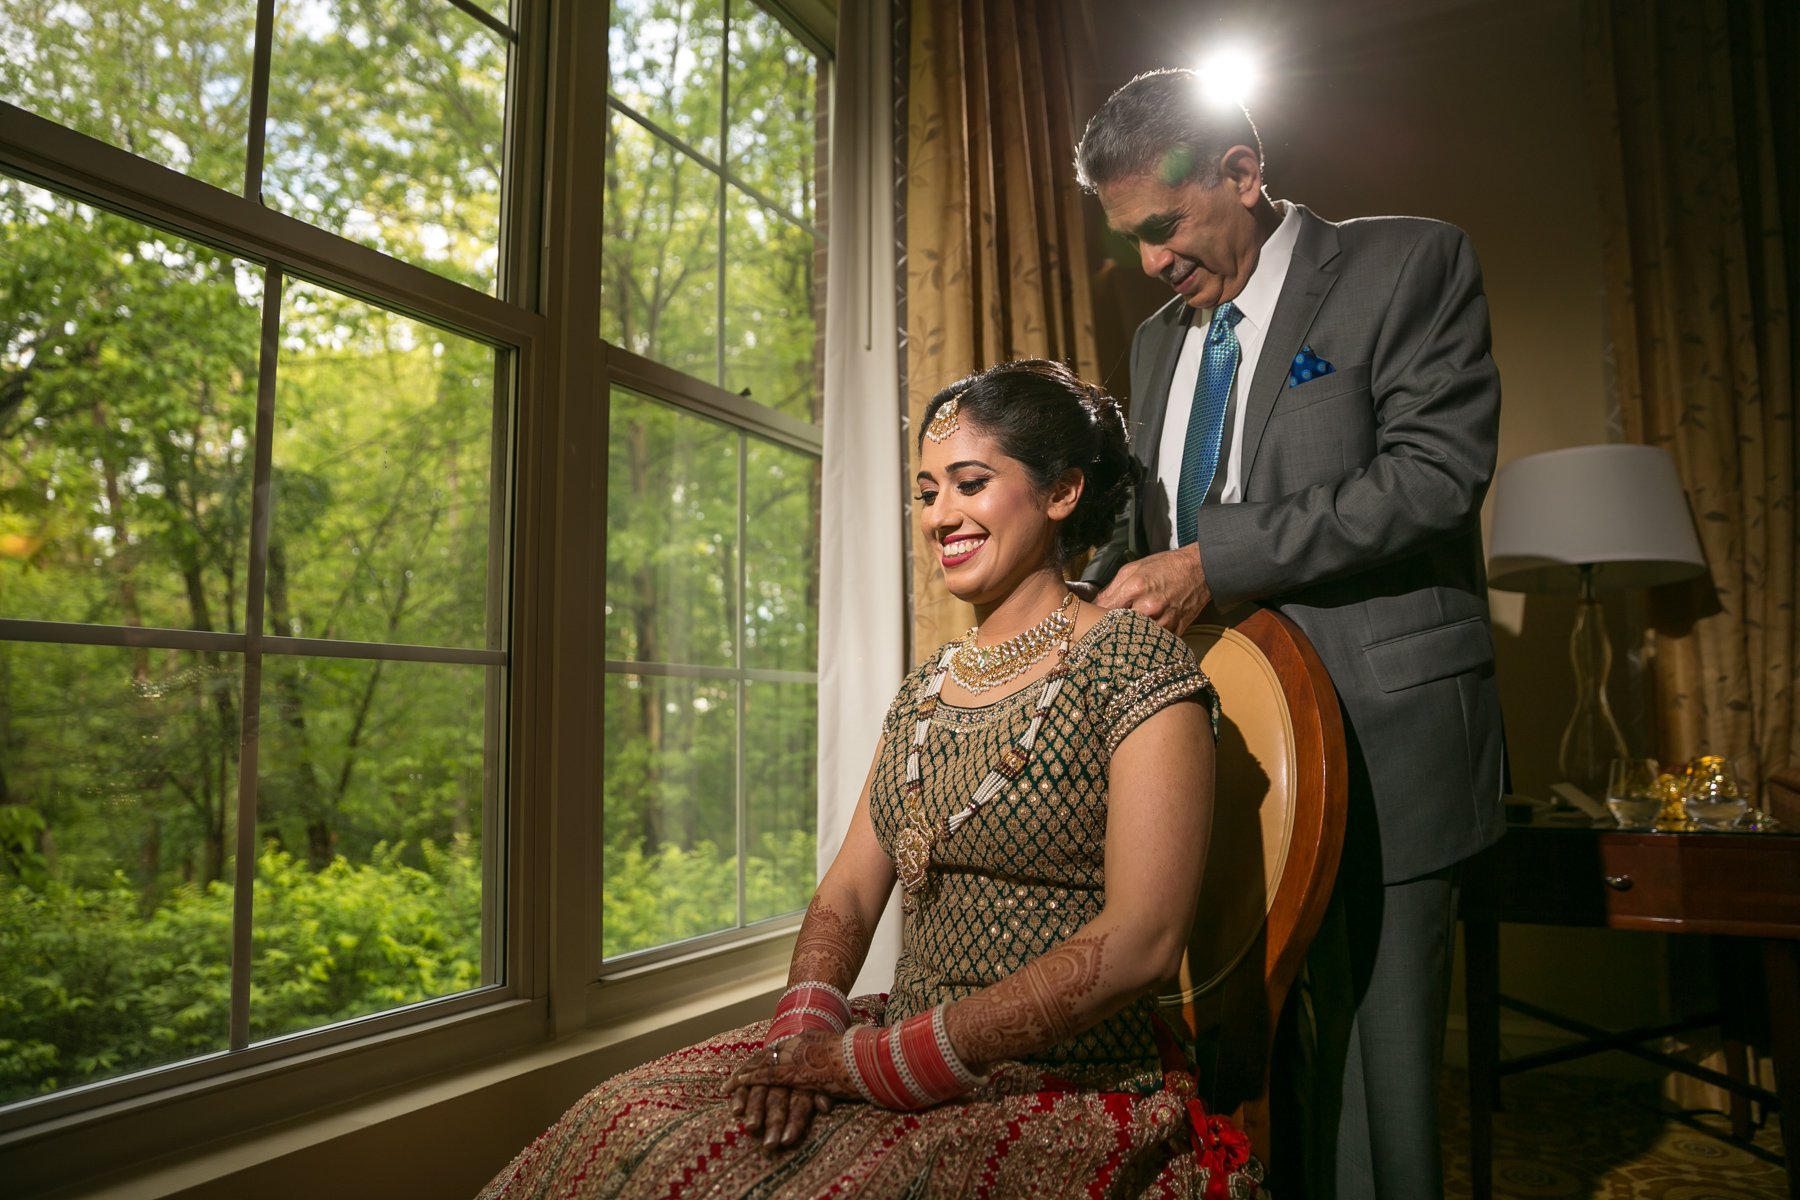 indian-south-asian-wedding-getting-ready-details-5.jpg